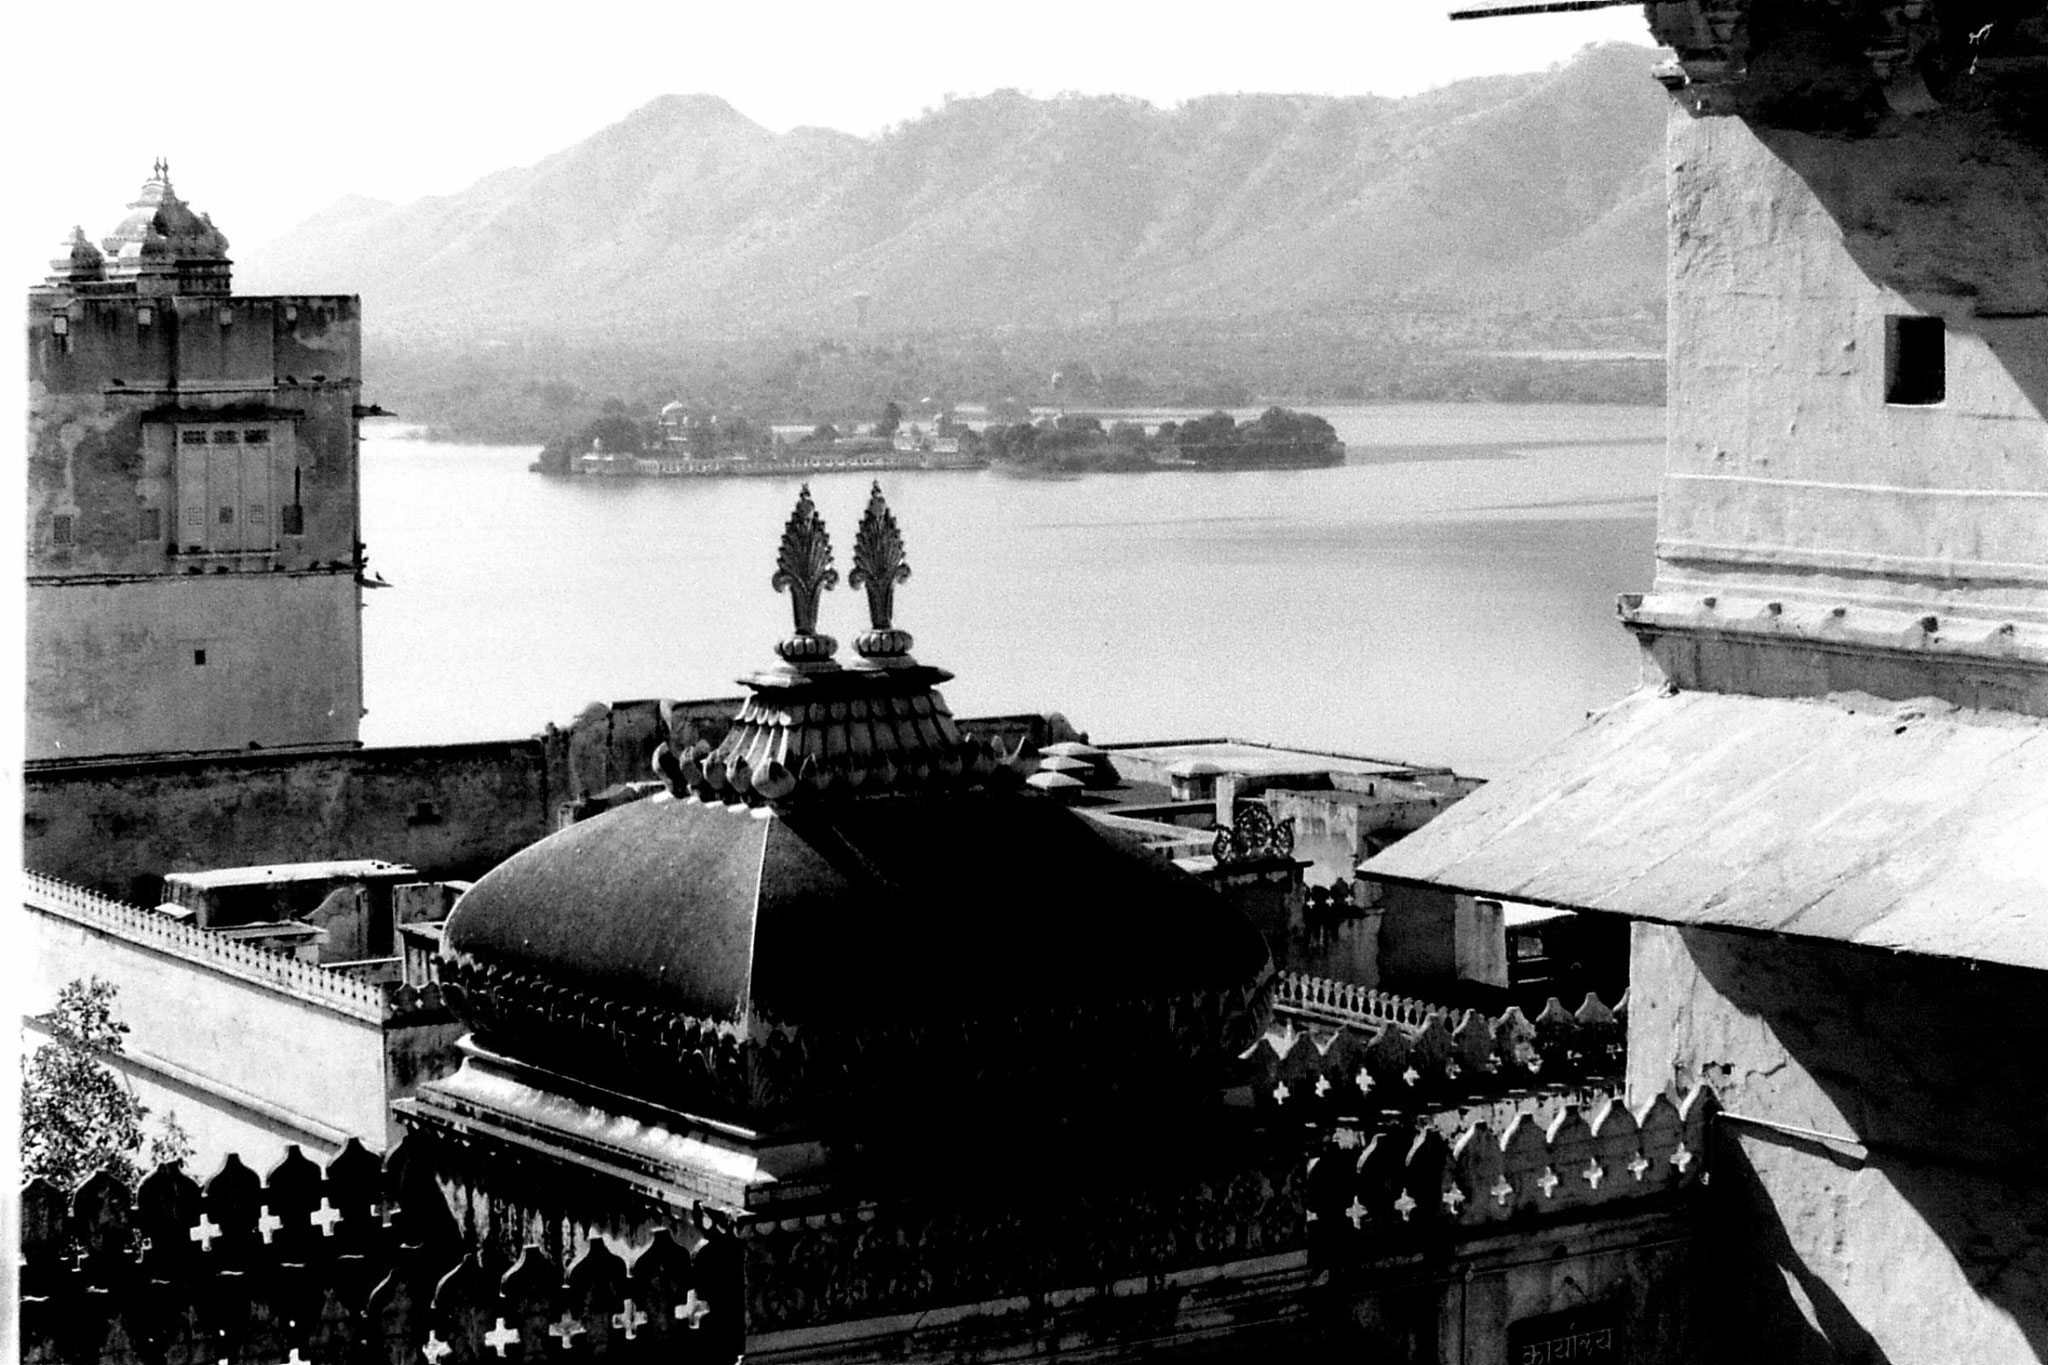 8/12/1989: 12: Udaipur, view of Jagmandir's Palace from City Palace on Lake Pichola